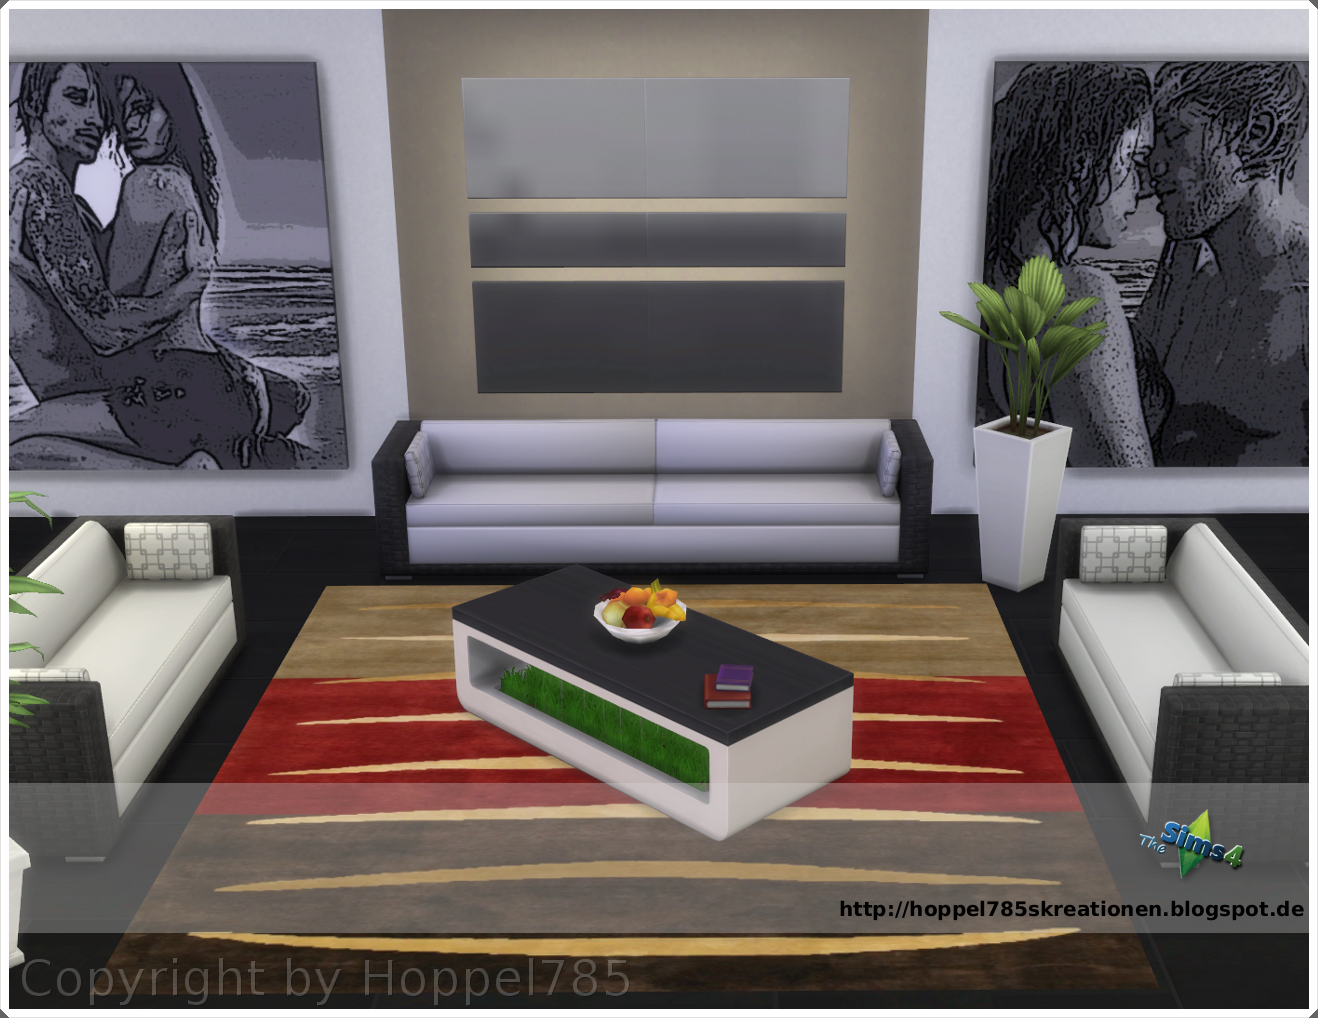 Sims 3 Teppiche Download Hoppel785s Kreationen Sims 4 Rugs By Hoppel785